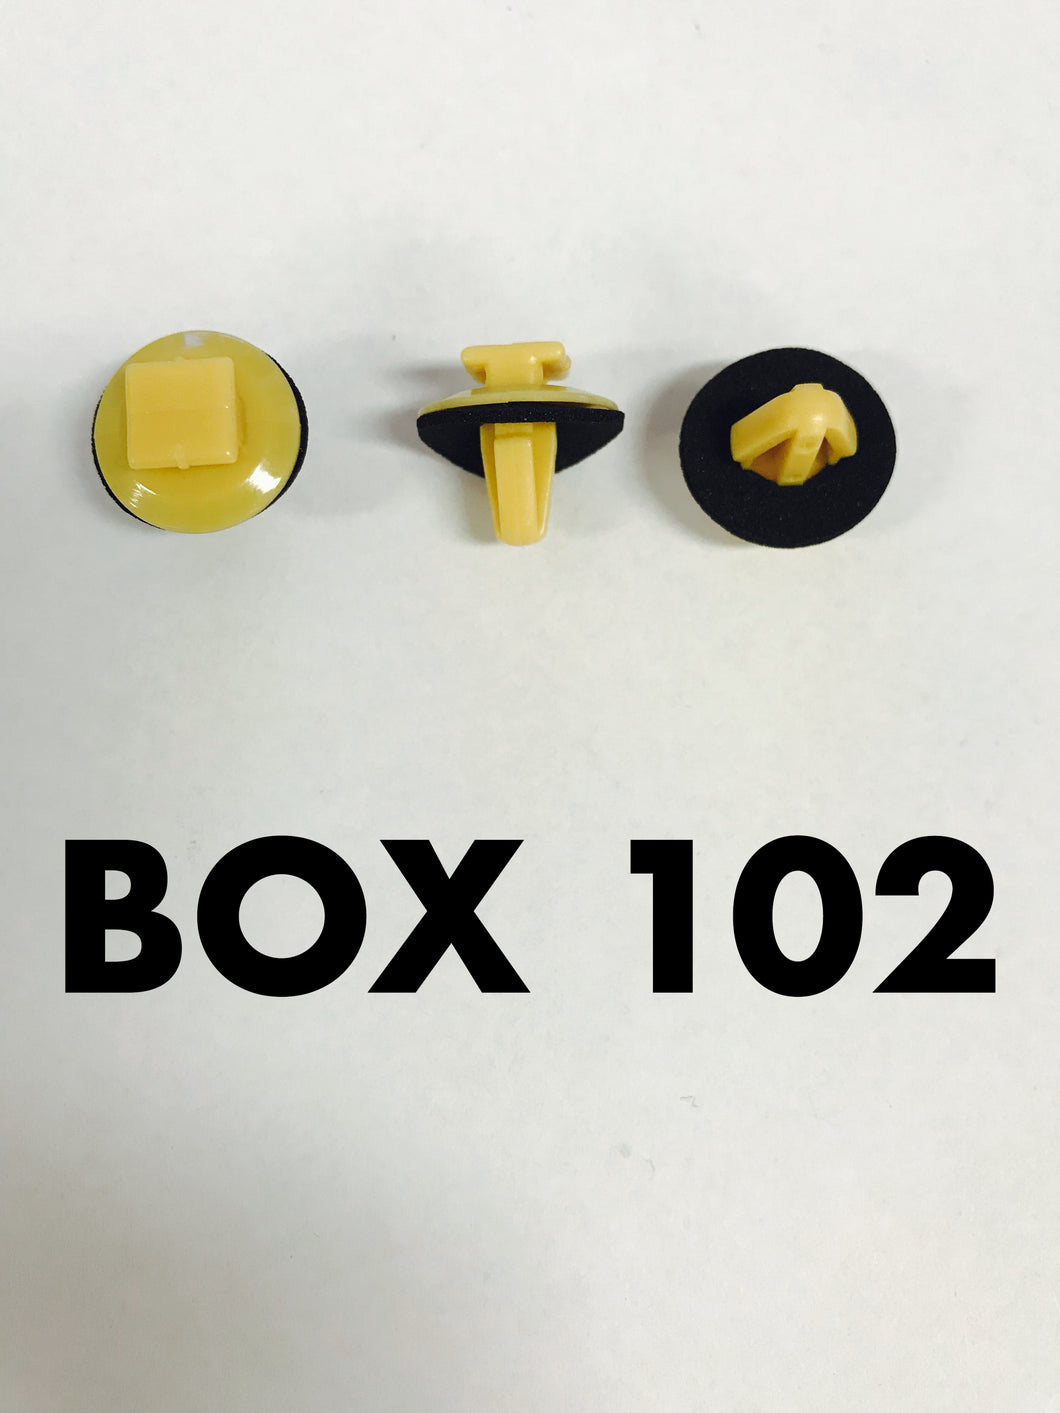 Carclips Box 102 10356 Door Mould Clip - Colourfast Auto